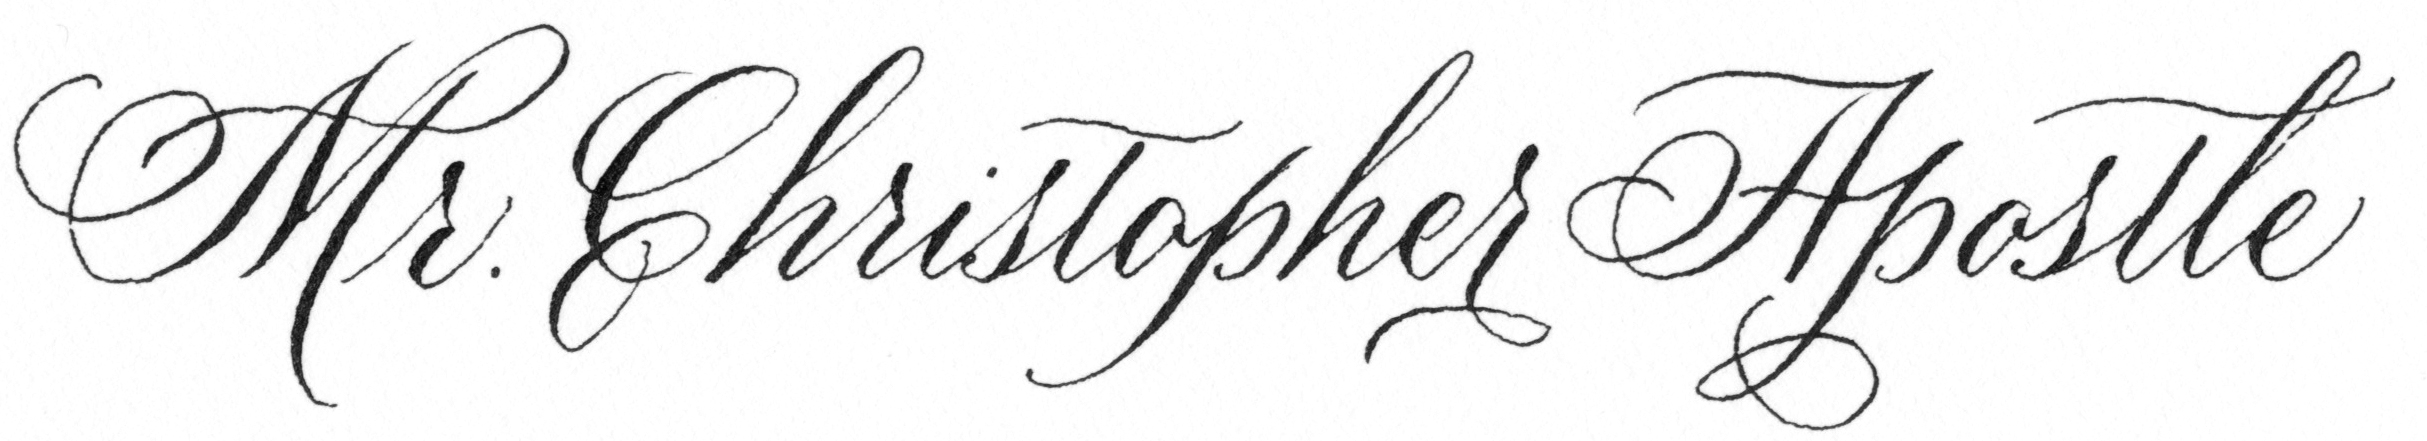 Calligraphy by www.chavelli.com